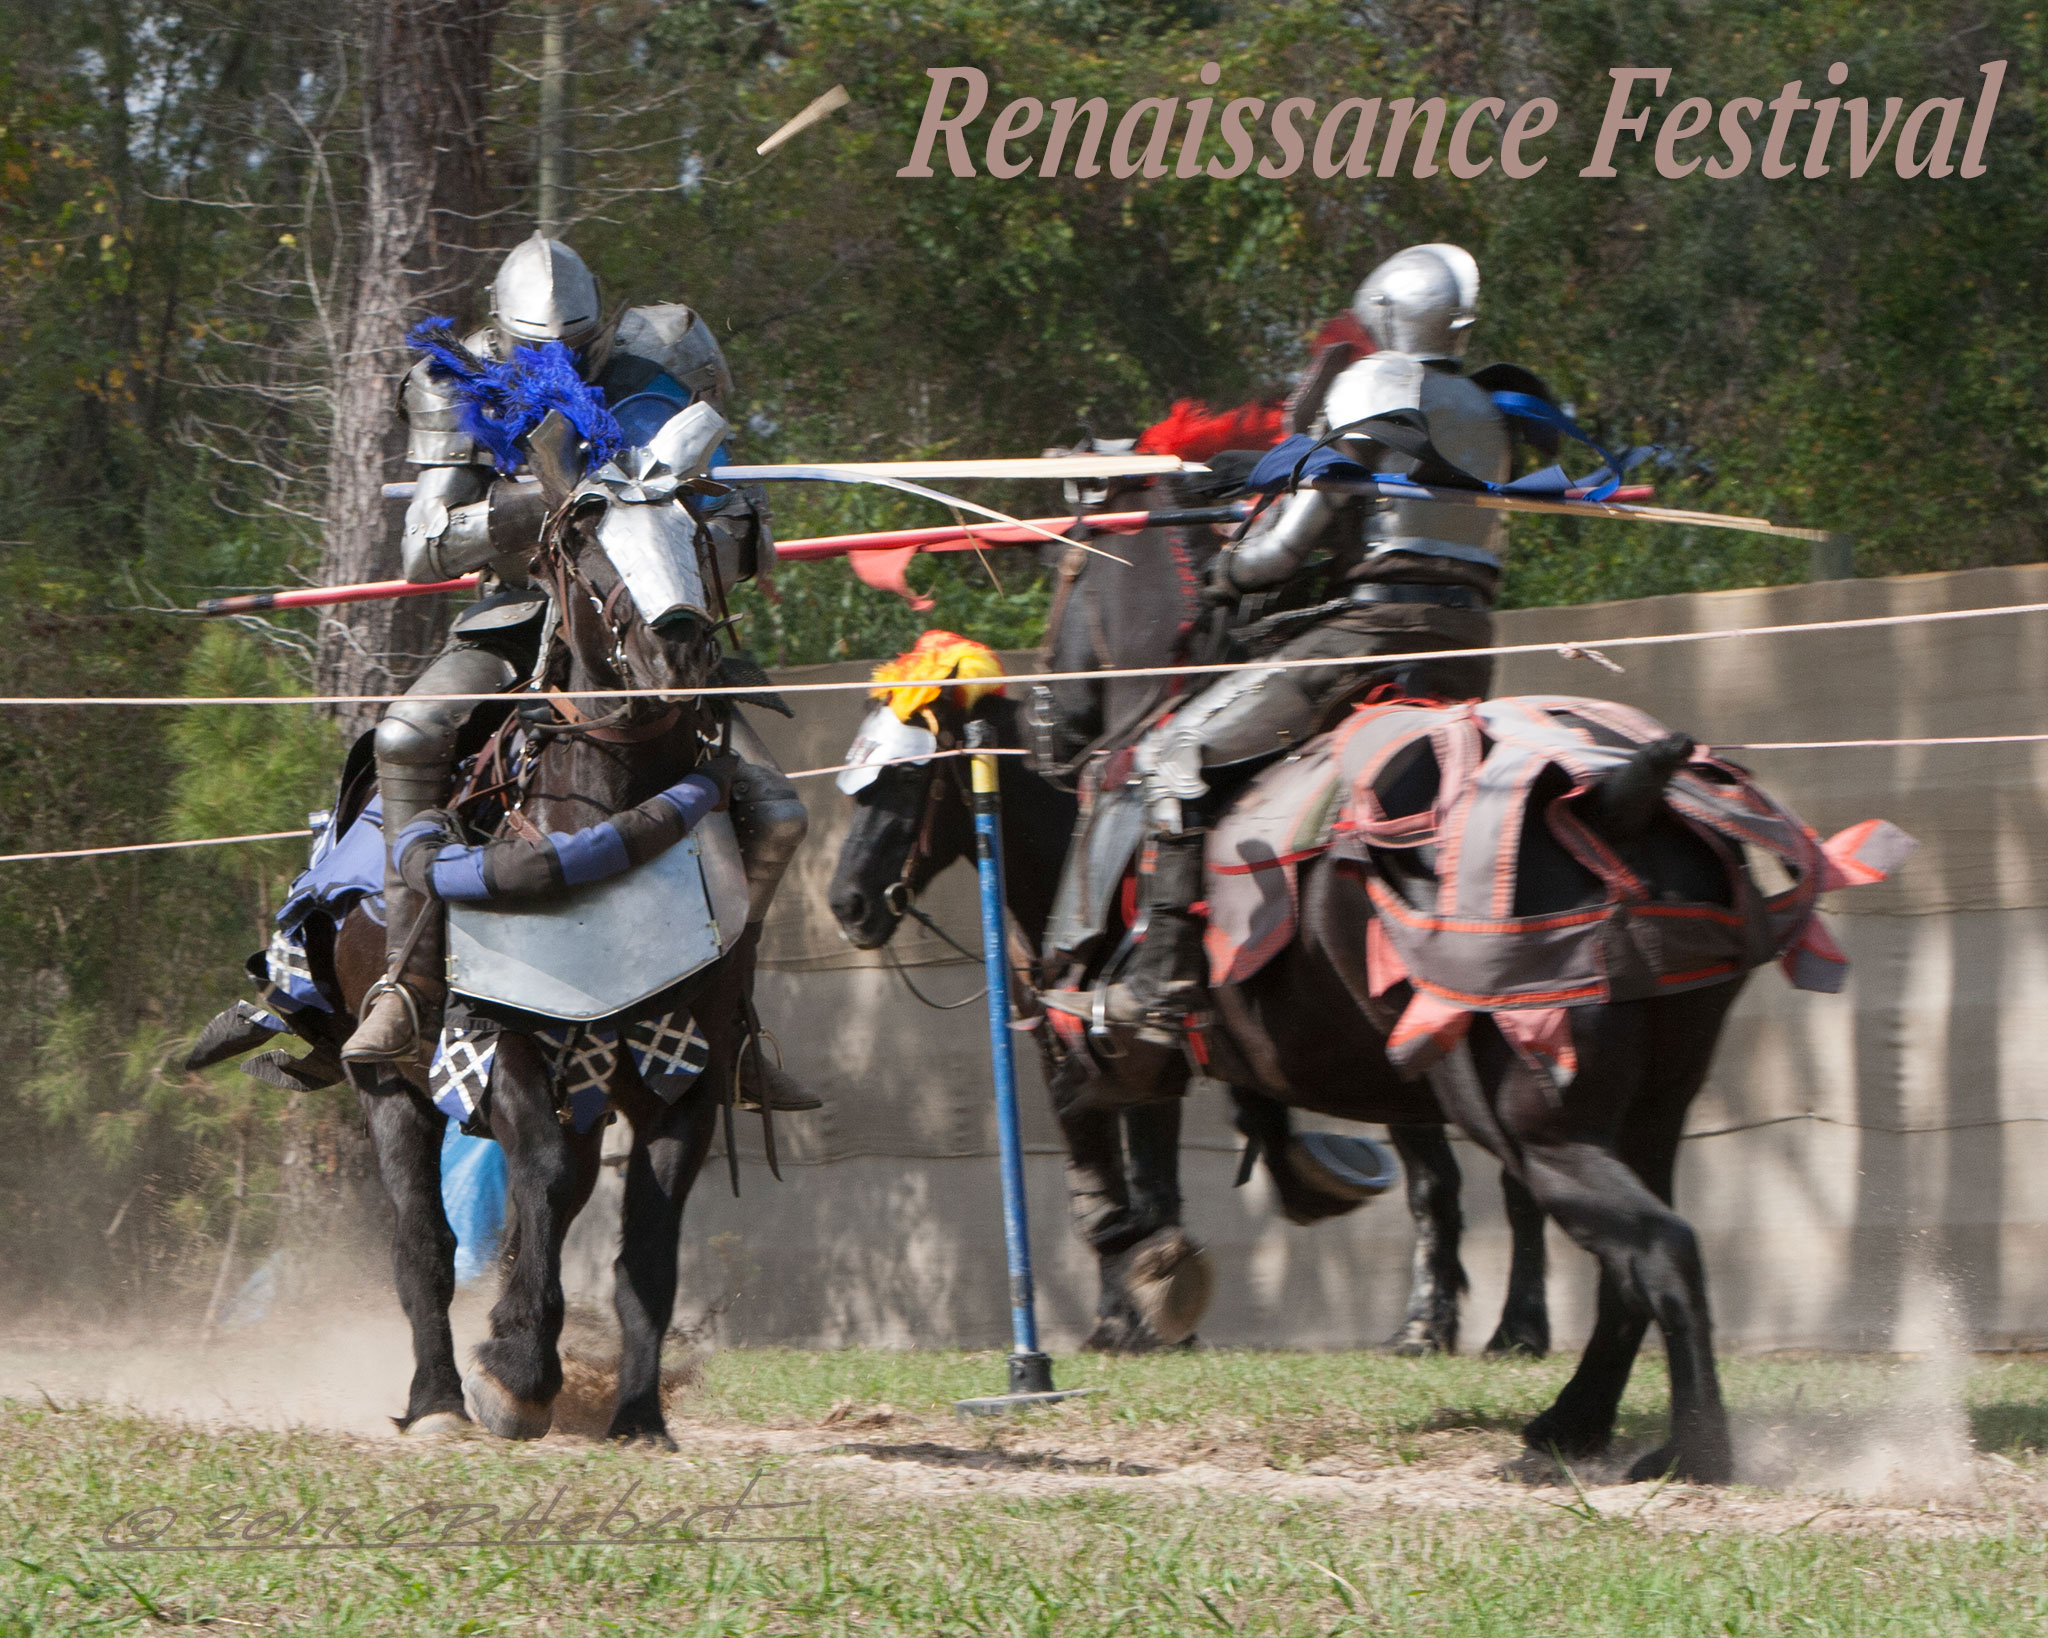 An Exciting Day at the Renaissance Festival!